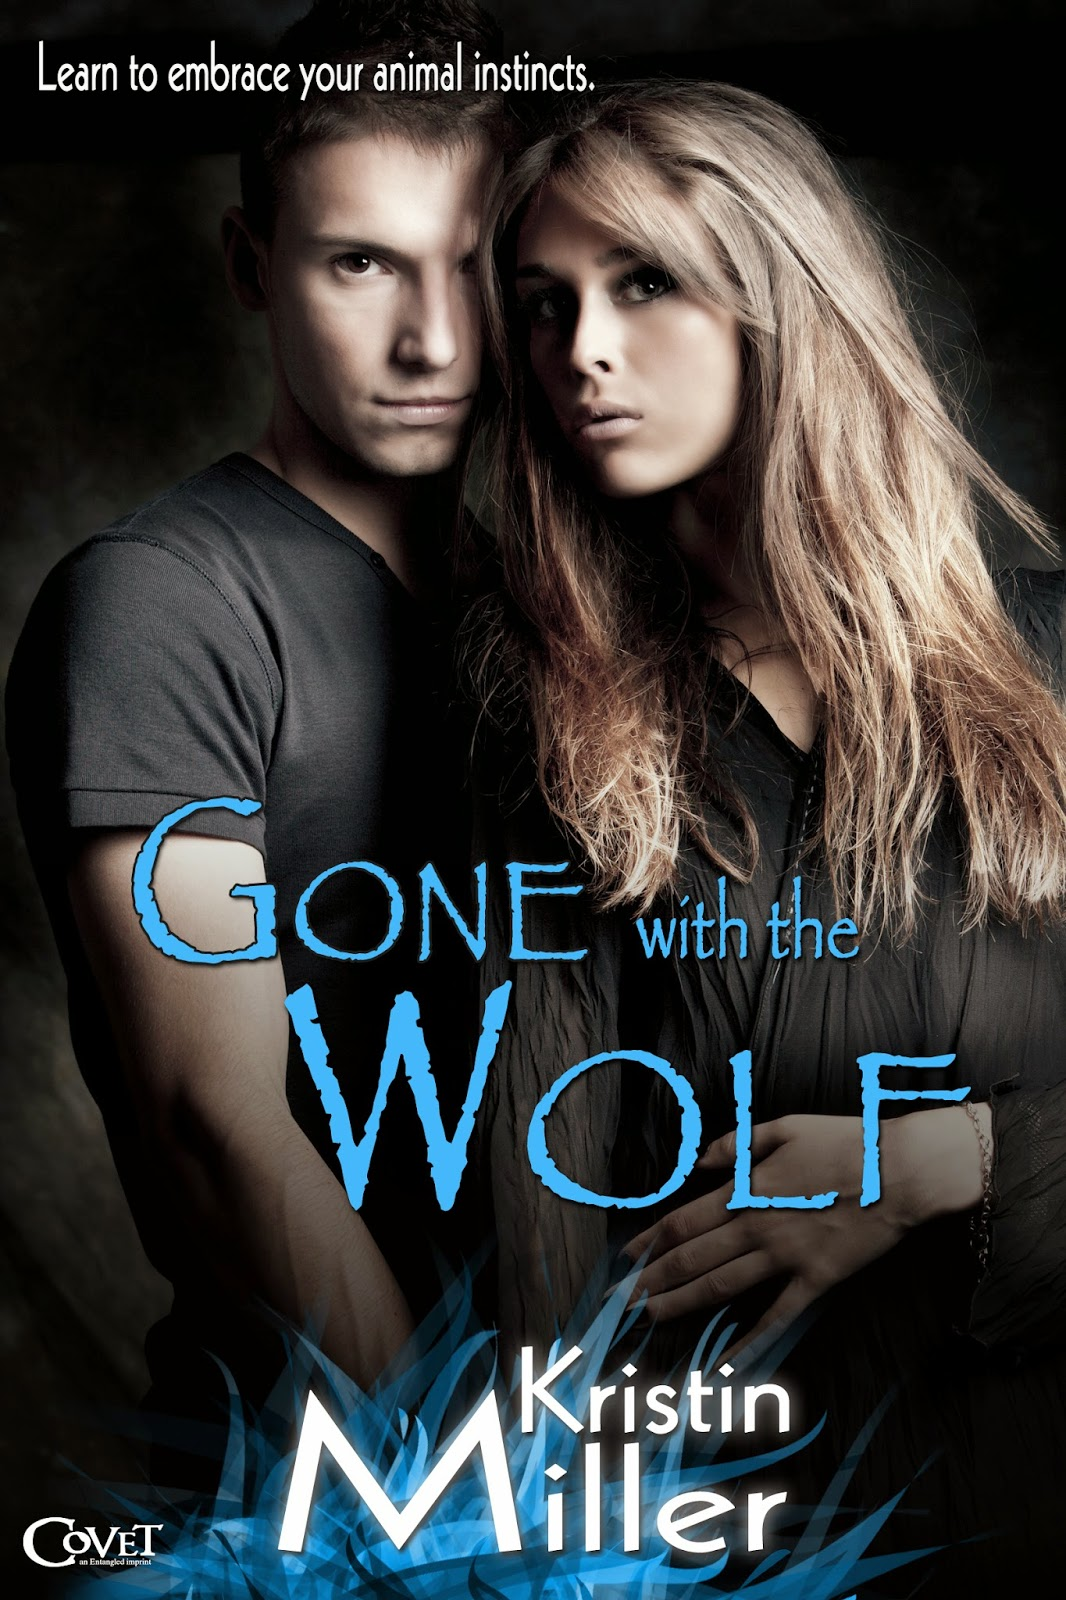 http://www.entangledpublishing.com/gone-with-the-wolf/